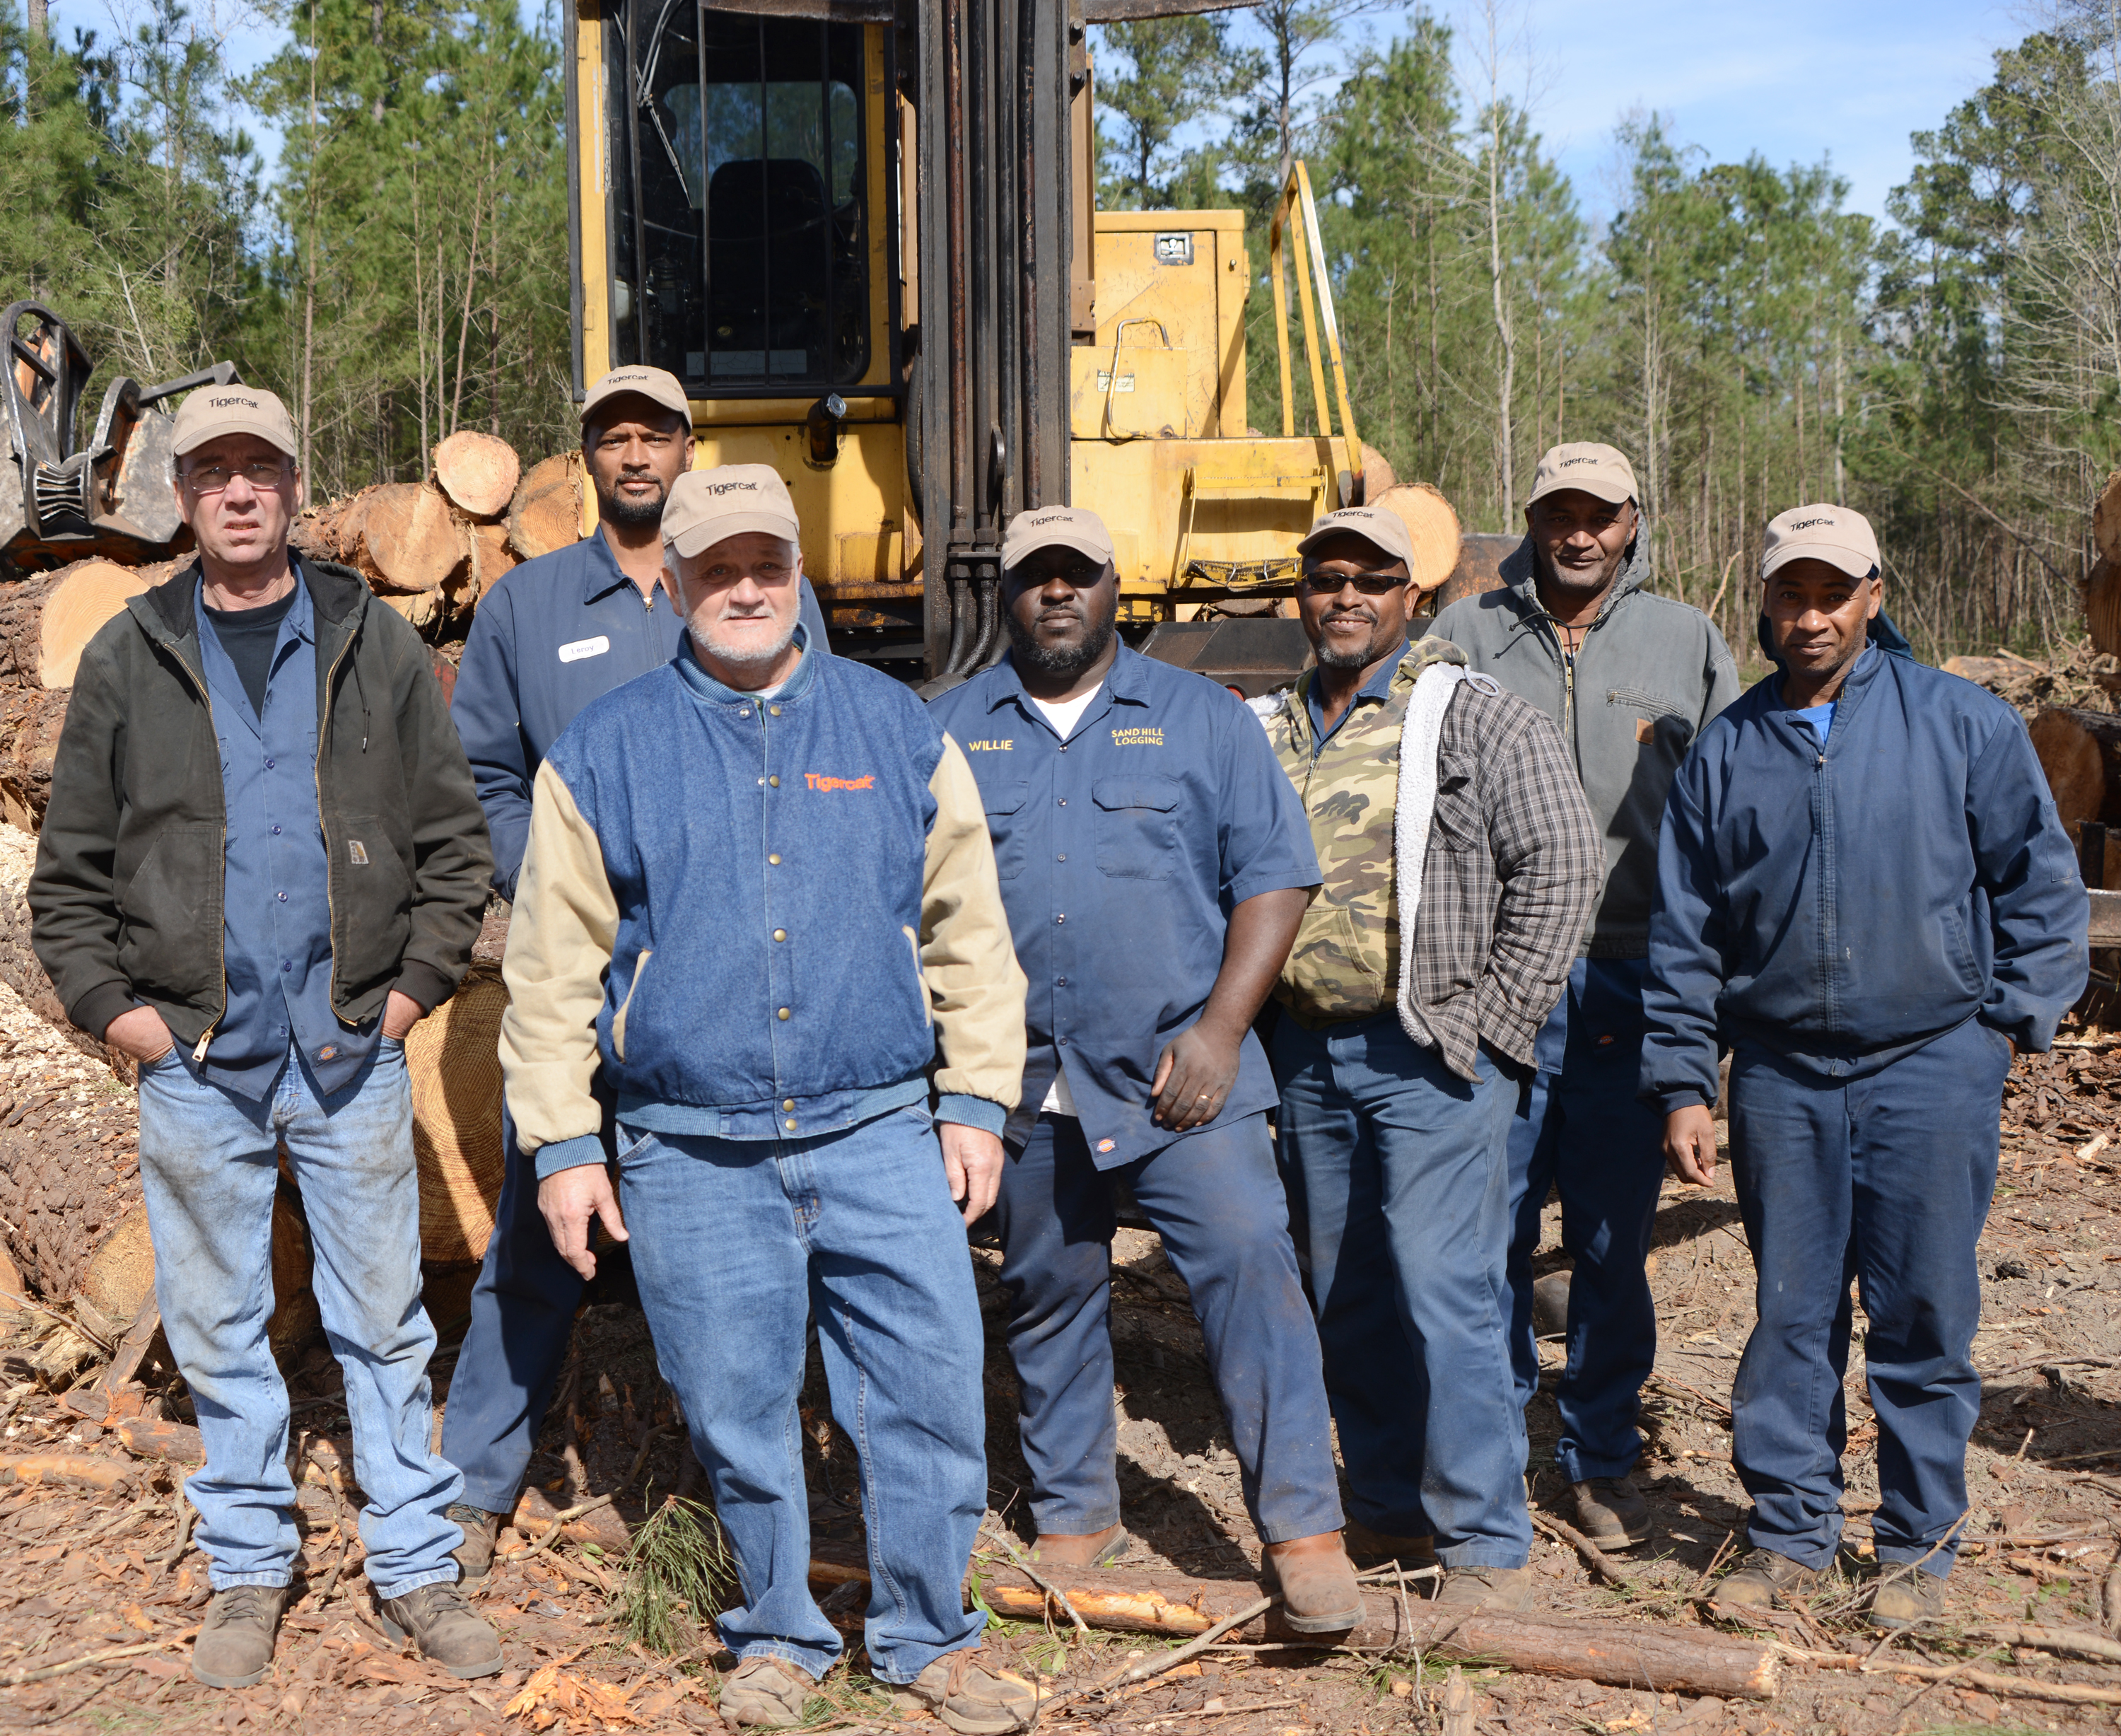 The Sand Hill crew. (L-R) Pete Frickling, Leroy Ruth, Alvin Dobson, Willie Walls, Lil Daddy, Charles Ruth and Carl Duncan.